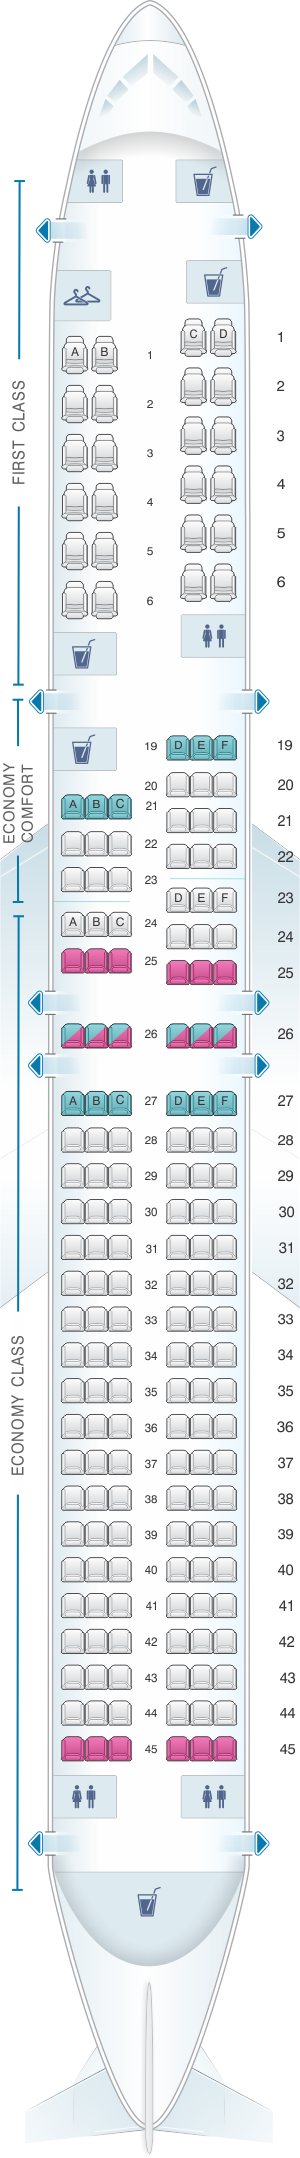 Seat map for Delta Air Lines Boeing B757 200 (757)